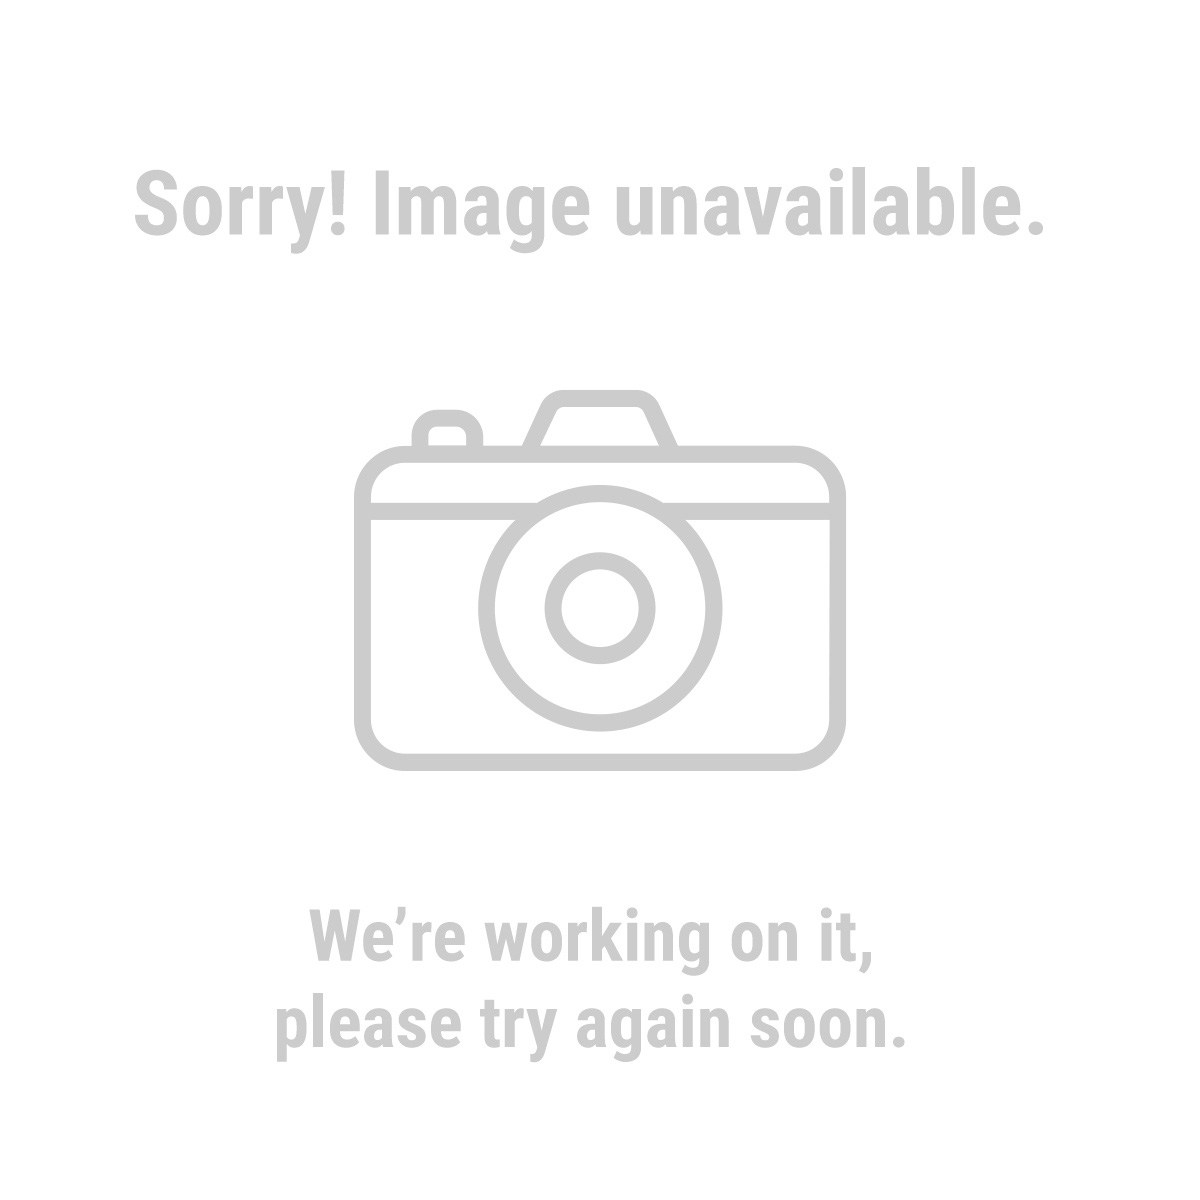 34 angle finish air nailer